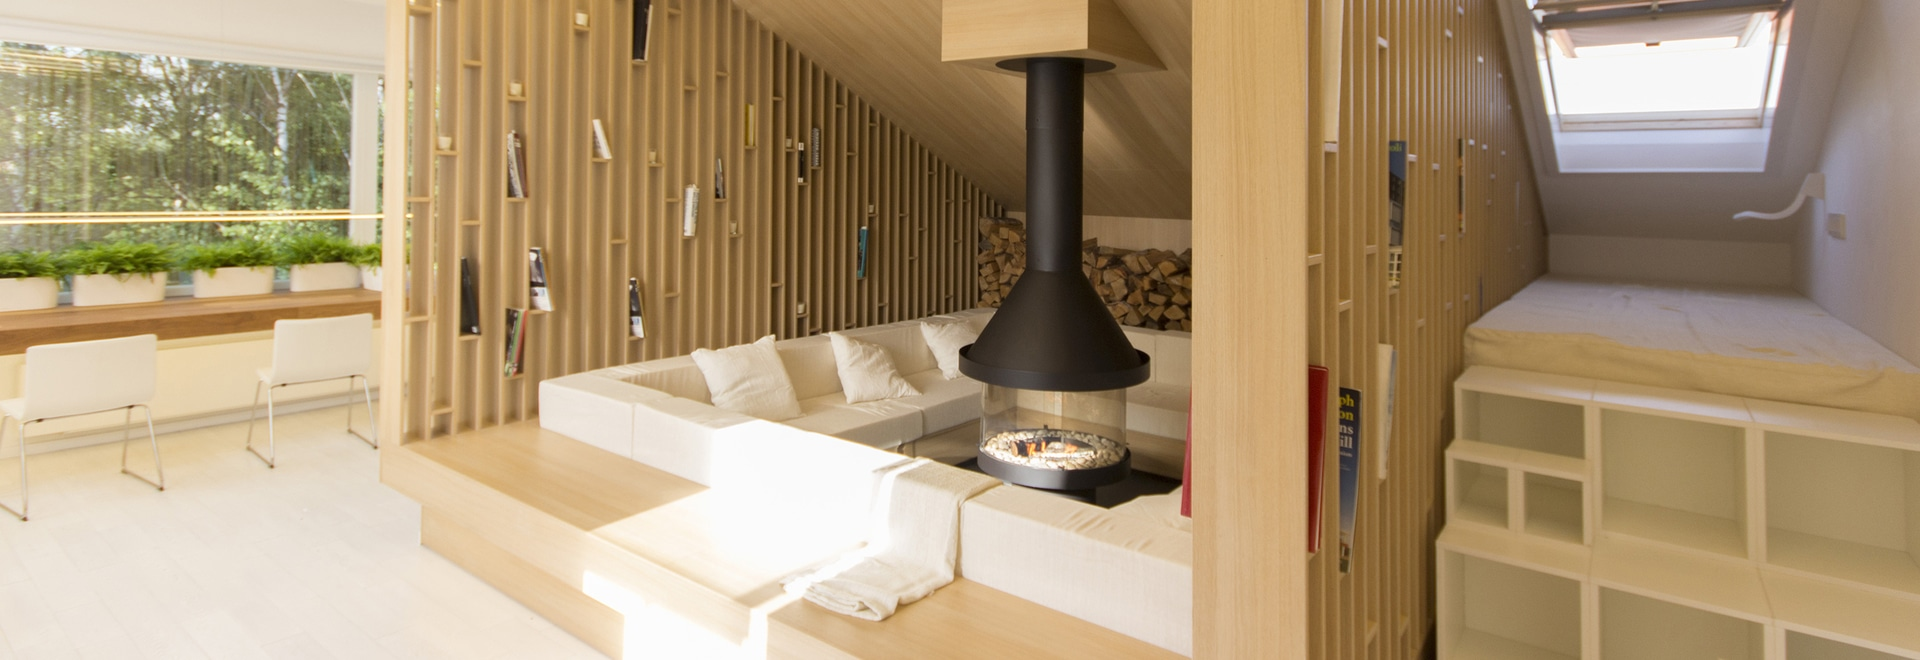 A Comfortable Lounge With Open Shelving Surrounds A Fireplace In This Home